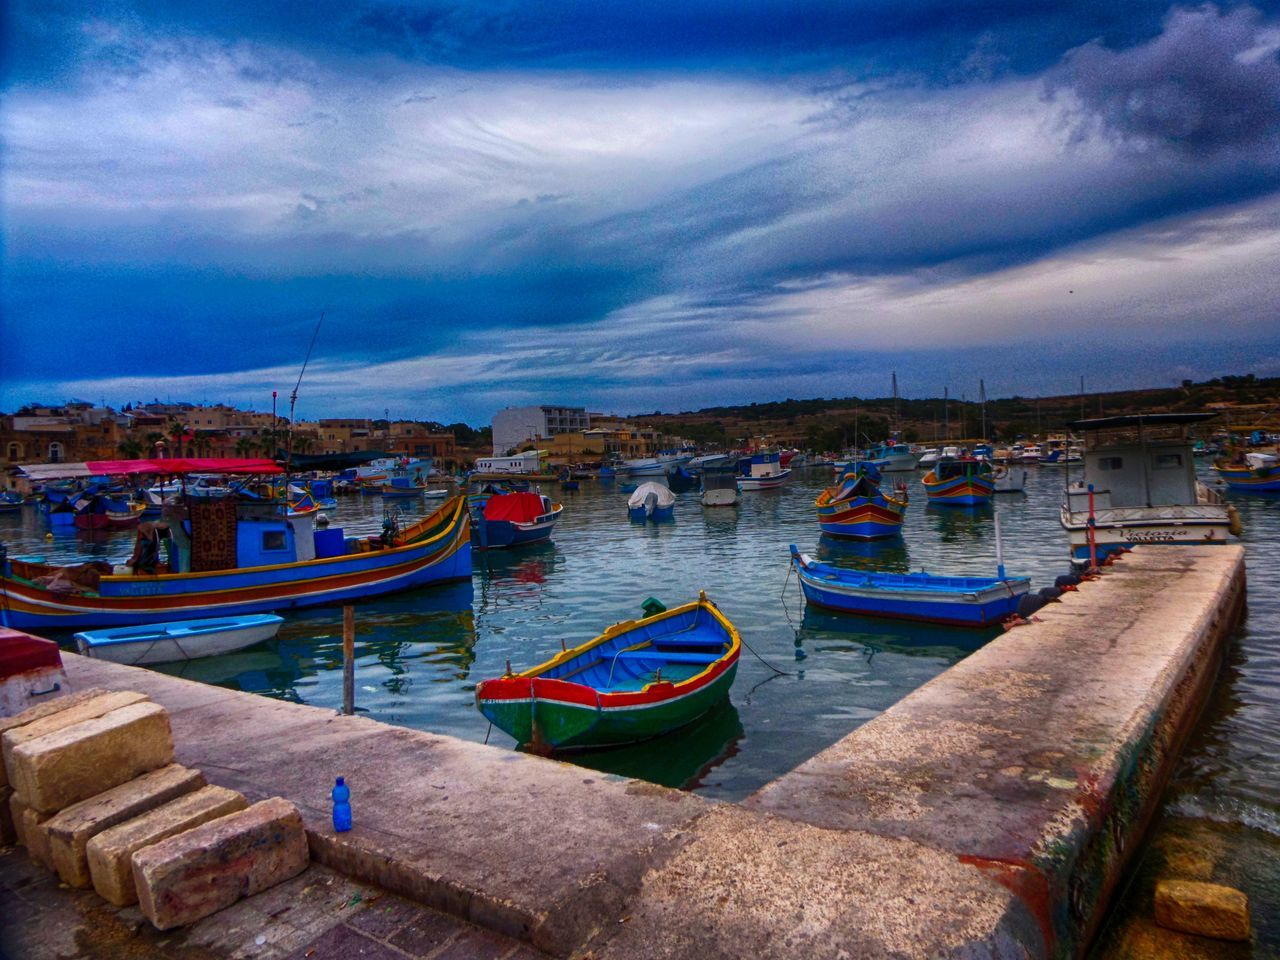 Boat Boating Boats Boats And Water Boats⛵️ Dock Docks Follow Follow4follow Followme Harbor Harbour Harbour View Malta Maltaphotography Malta♥ Market Marsaxlokk Ship Ships Ships⚓️⛵️🚢 Sky Water Water Reflections Water_collection